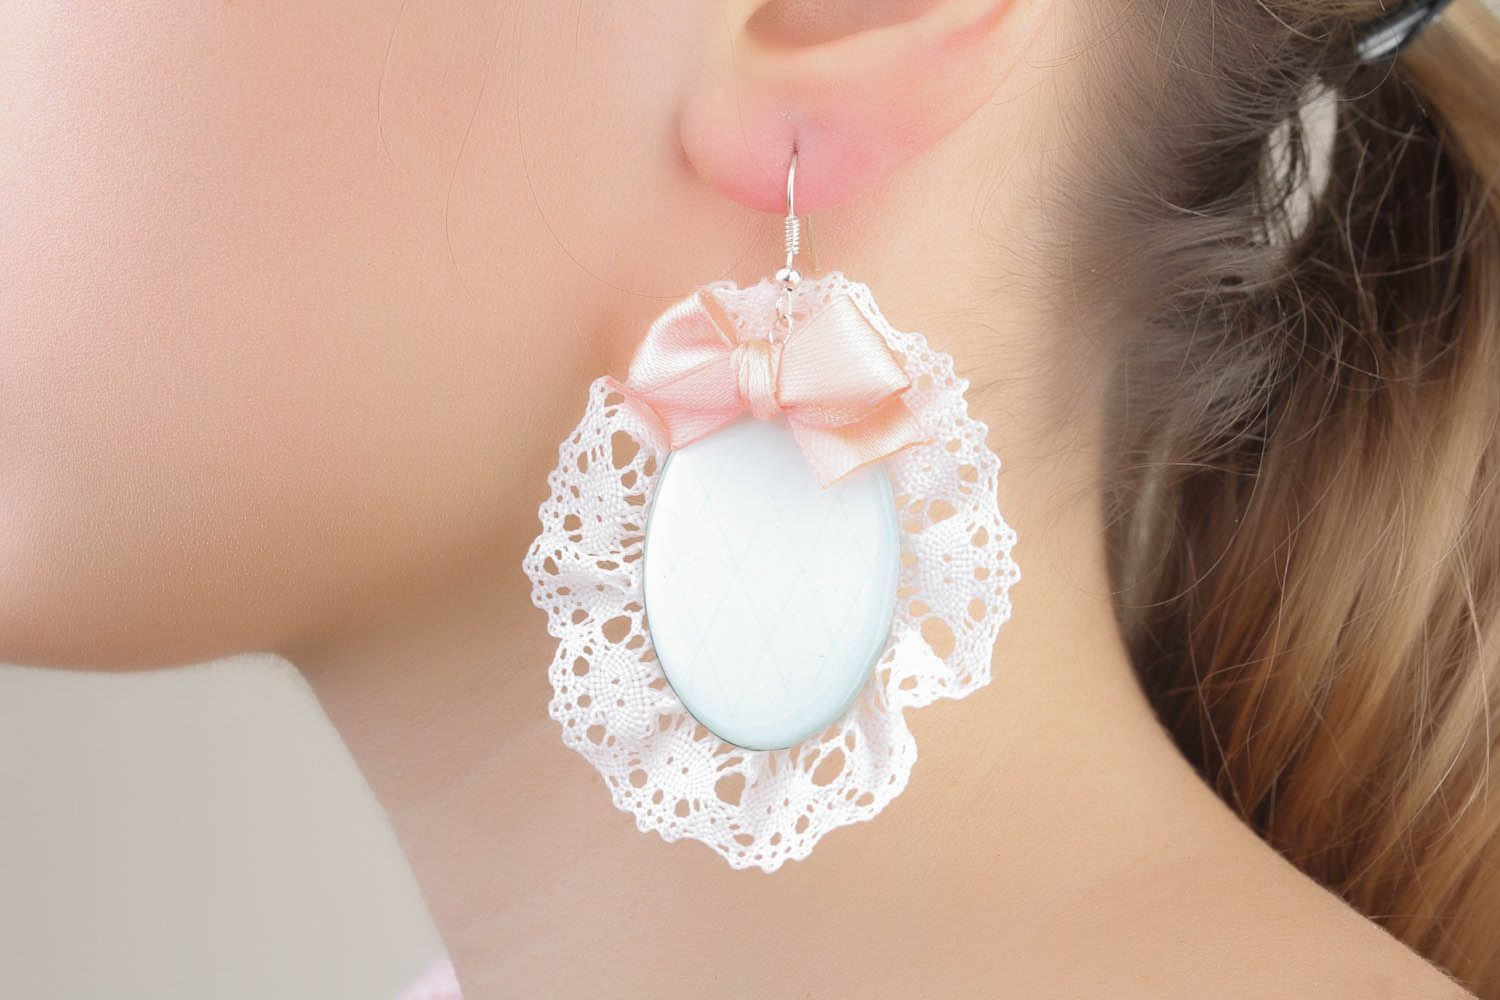 Earrings with lace and bows photo 4